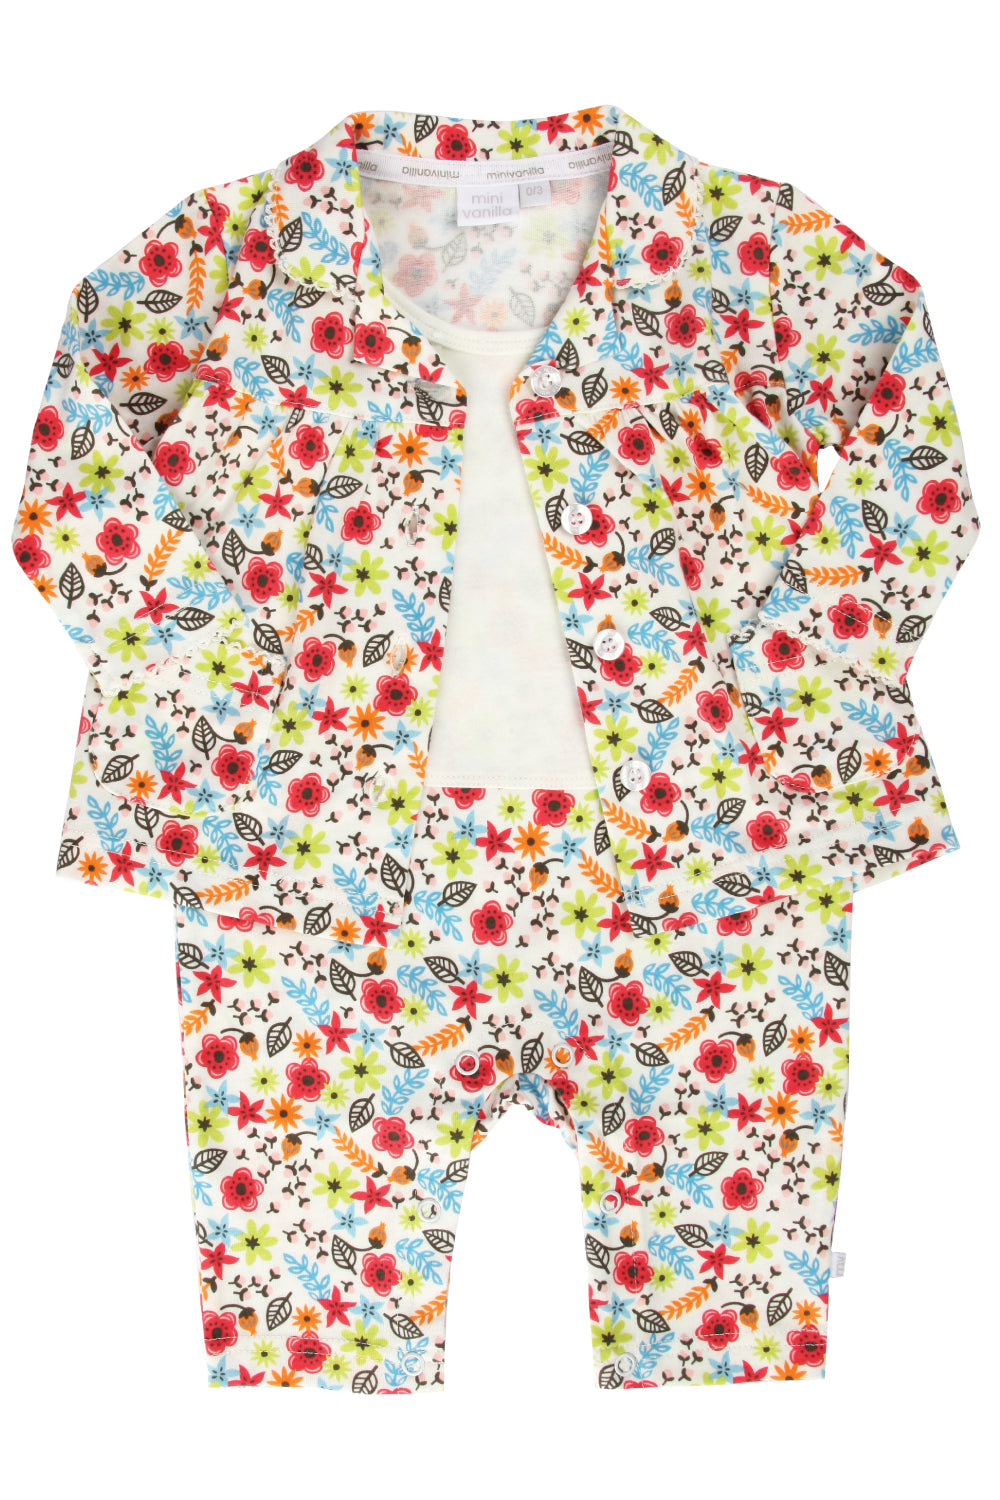 Baby Mock Pyjamas for Girls ages 0-18 months